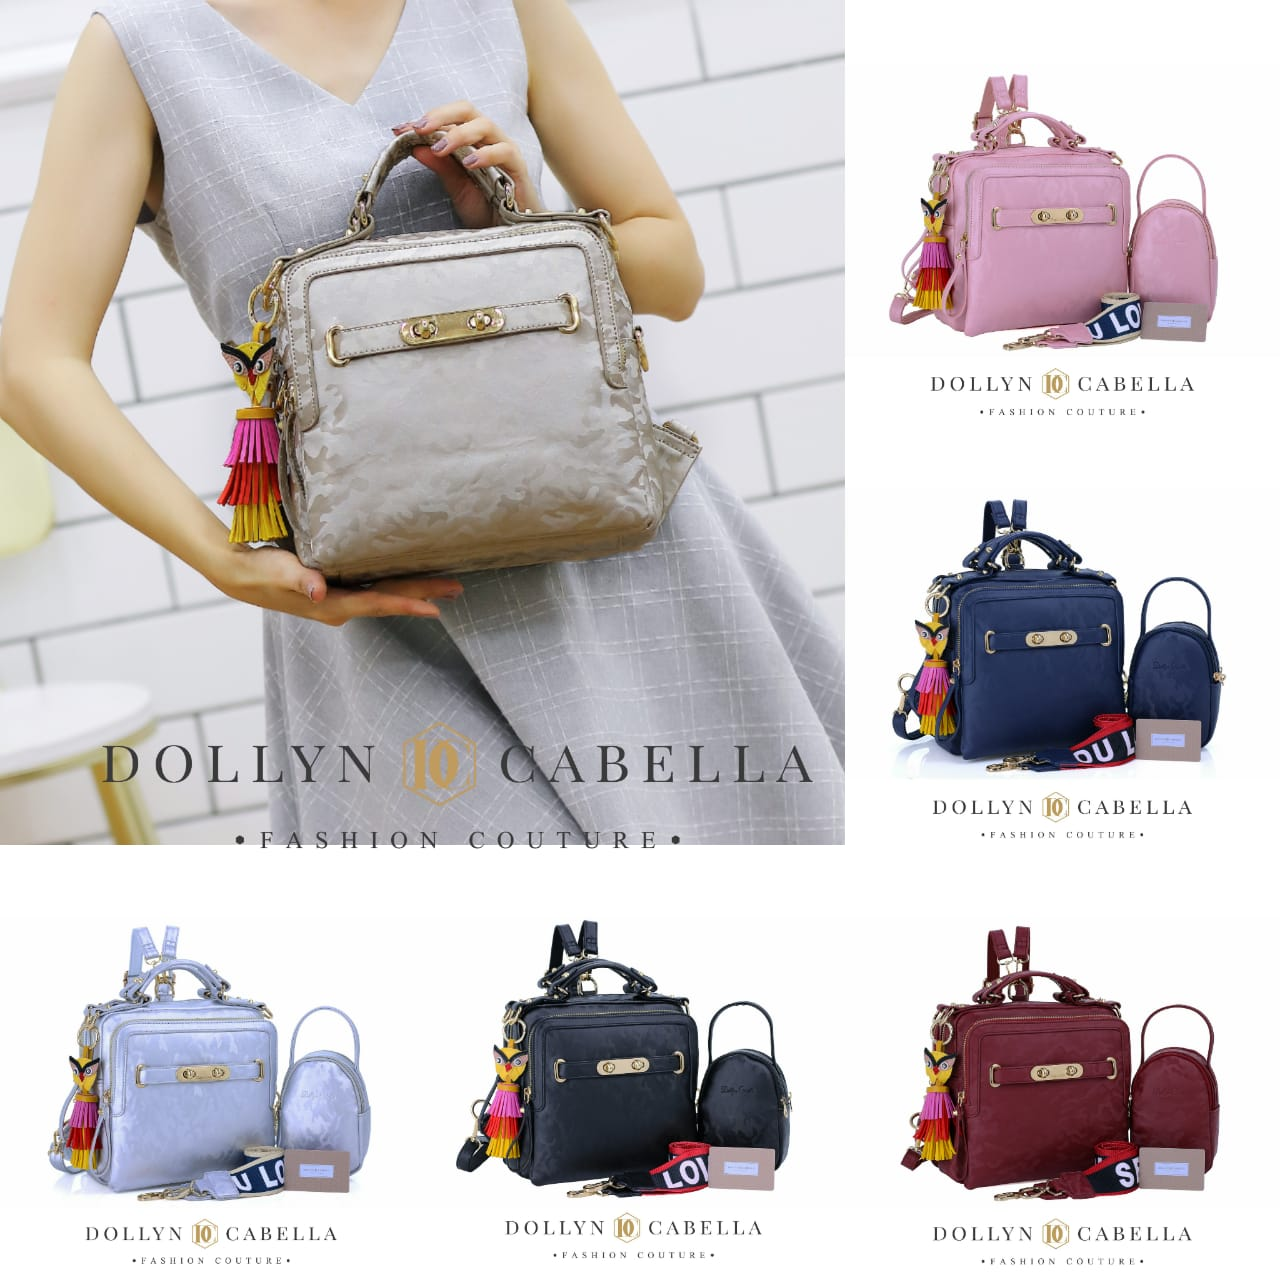 tas branded semi original 2020 876-6MR ,tas branded semi super, tas branded semi premium murah,tas branded semipremium batam